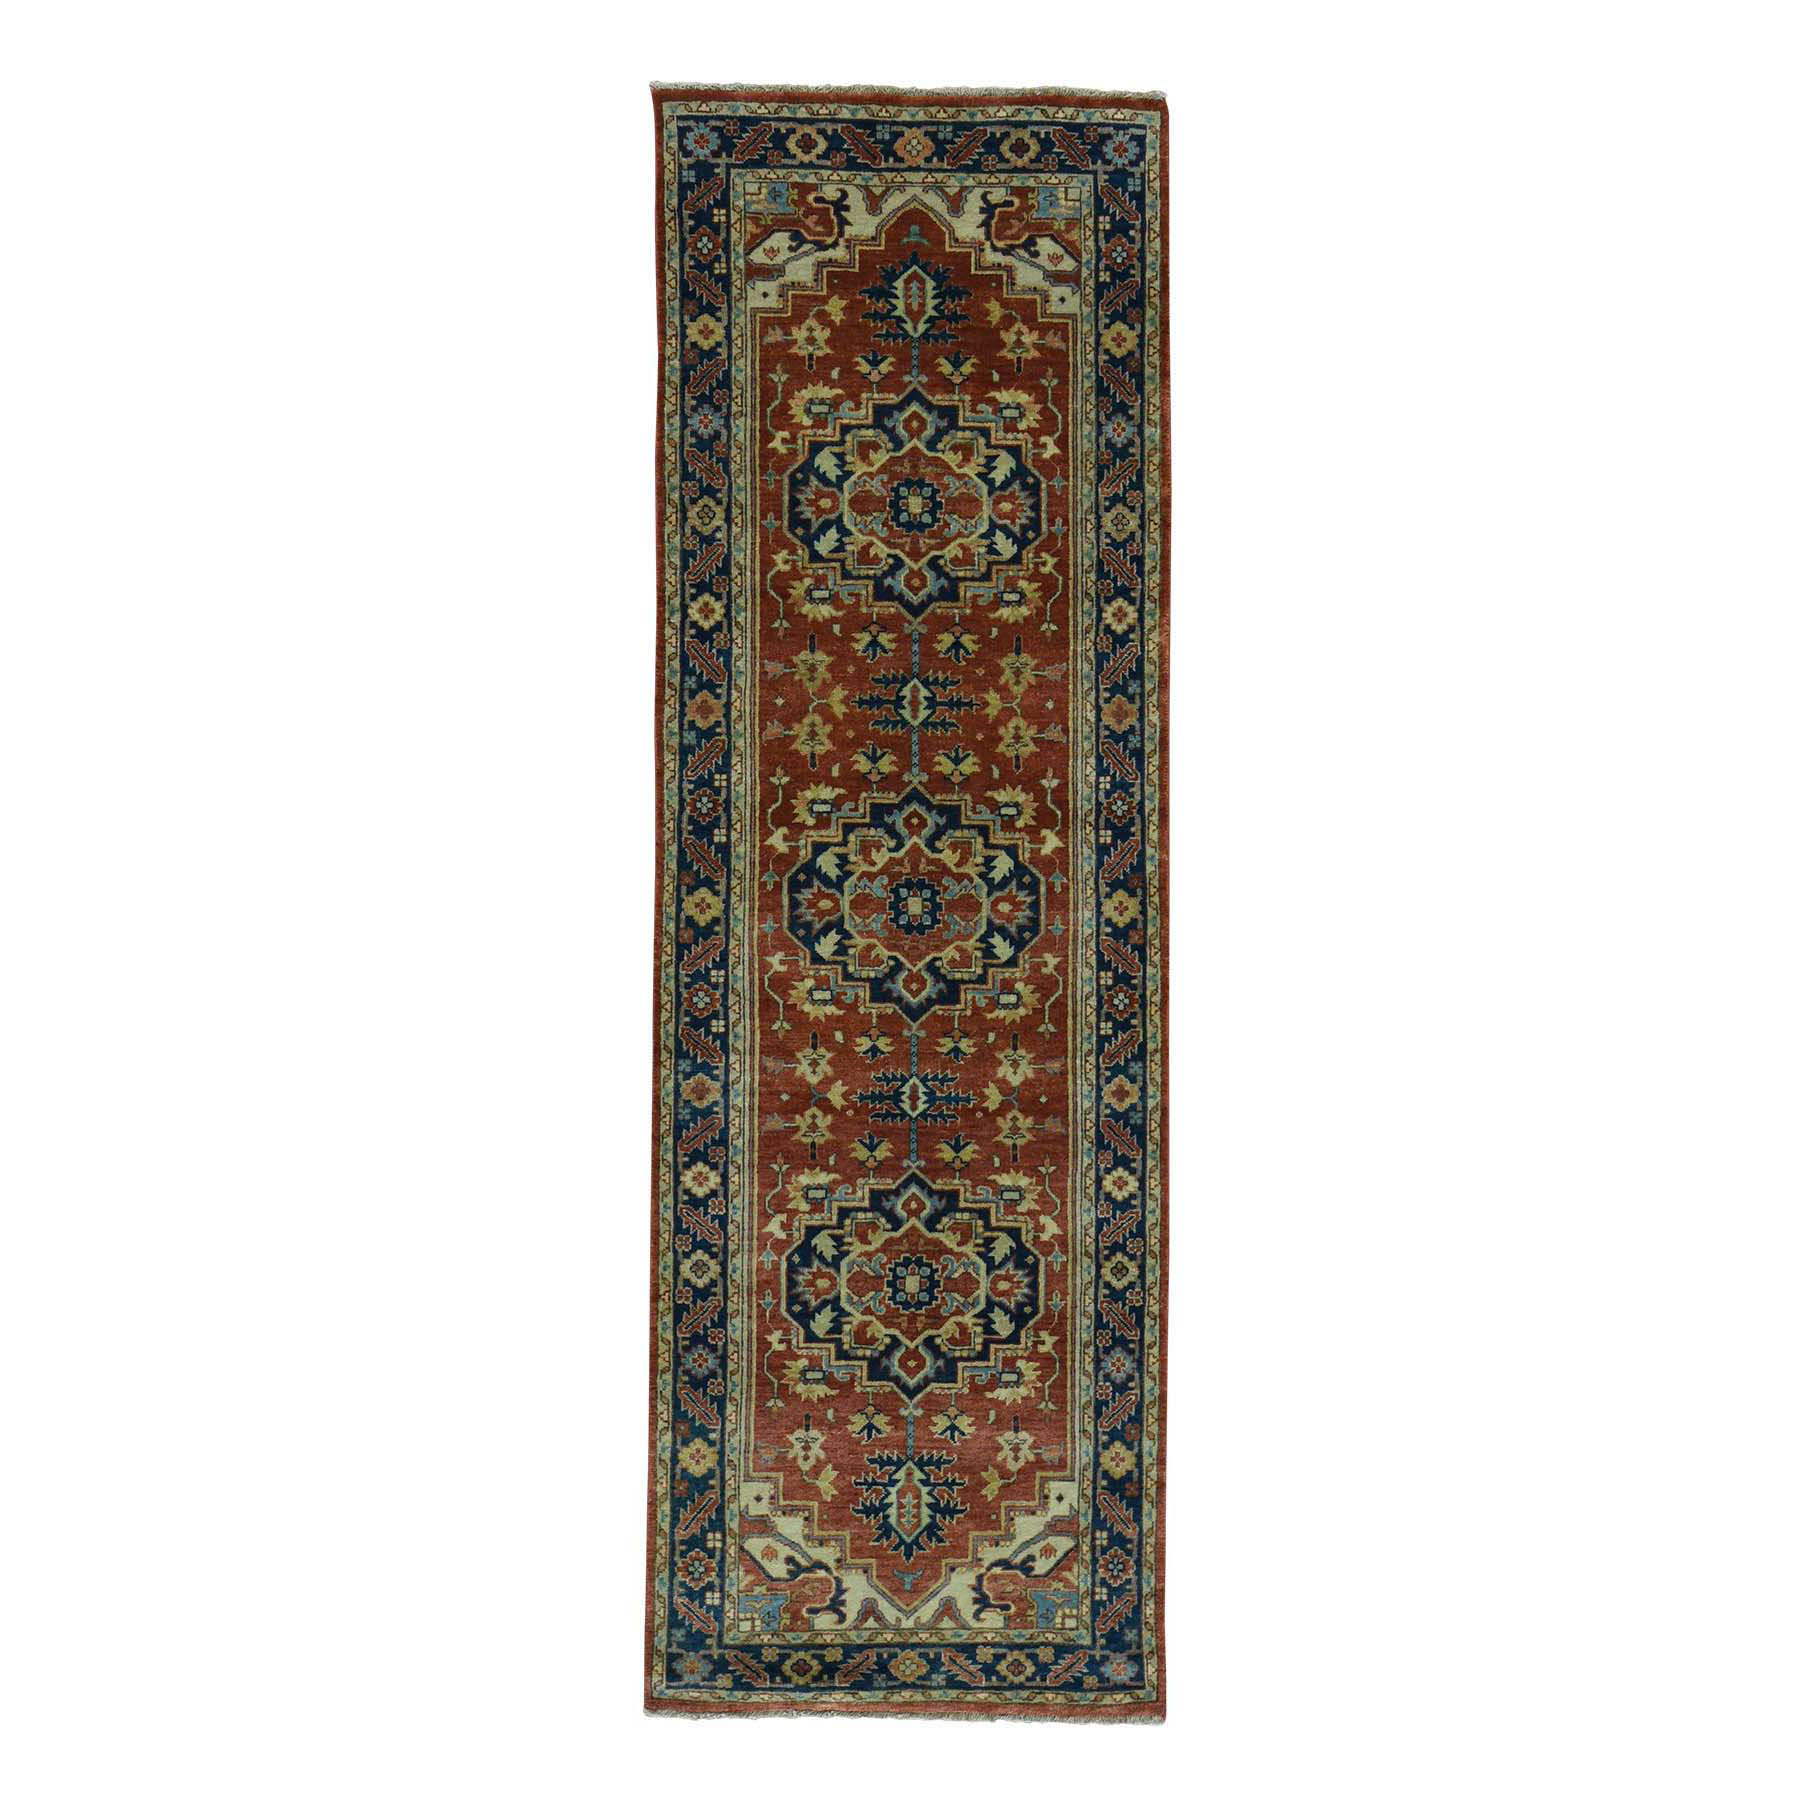 2'8''x10' Antiqued Heriz Re-creation Pure Wool Hand Woven Runner Rug